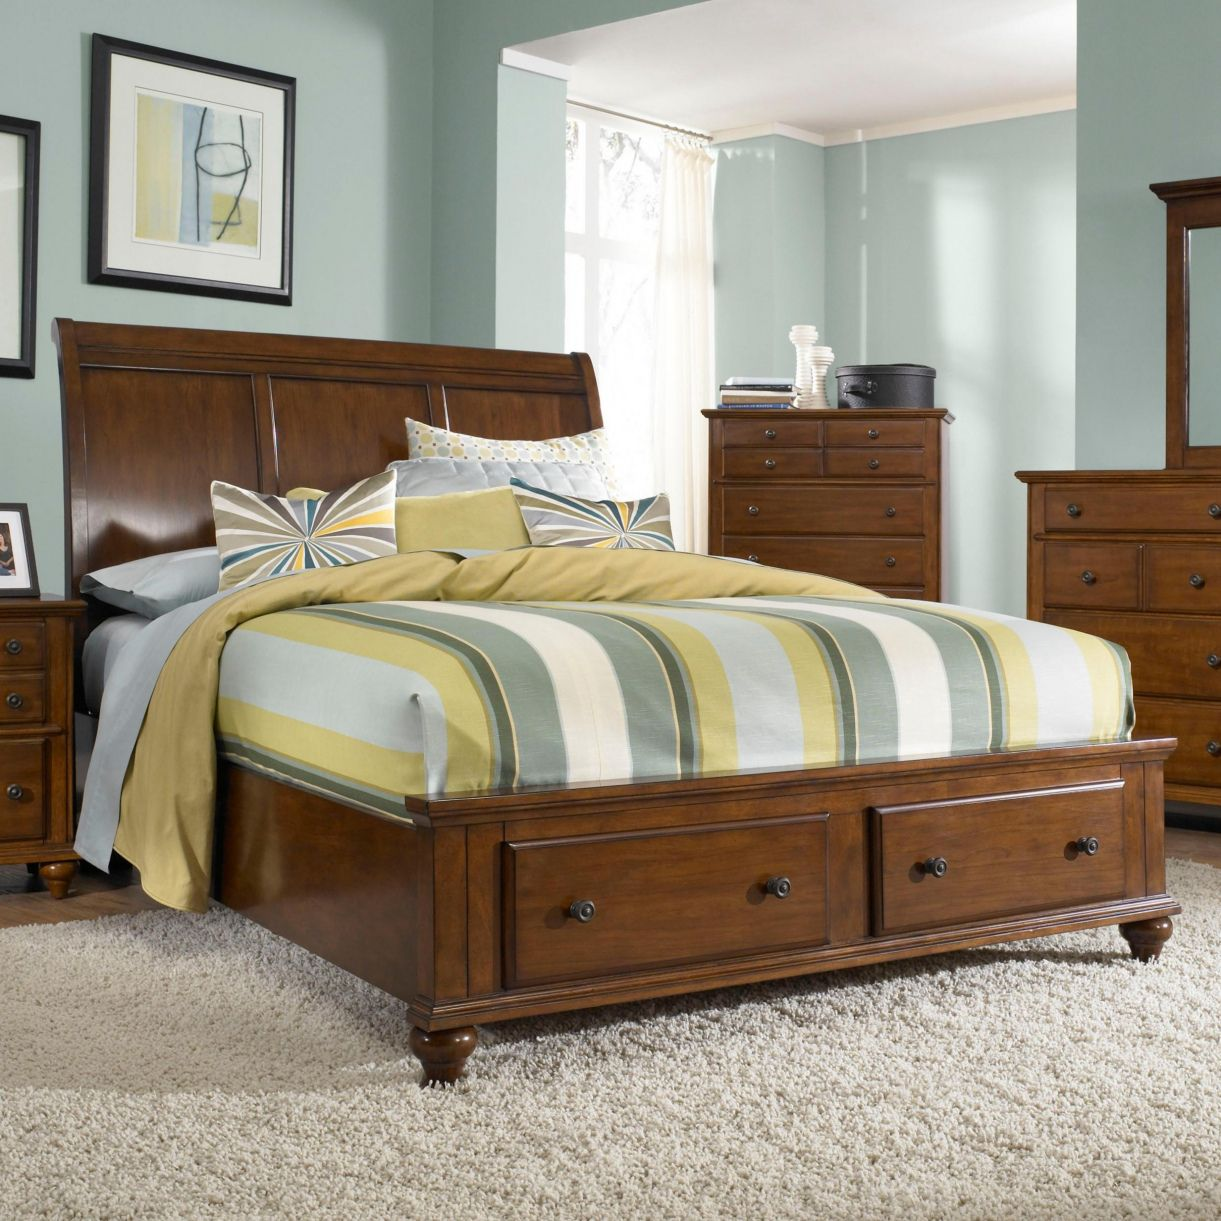 Raymour Flanigan Bedroom Furniture - Modern Affordable Furniture ...